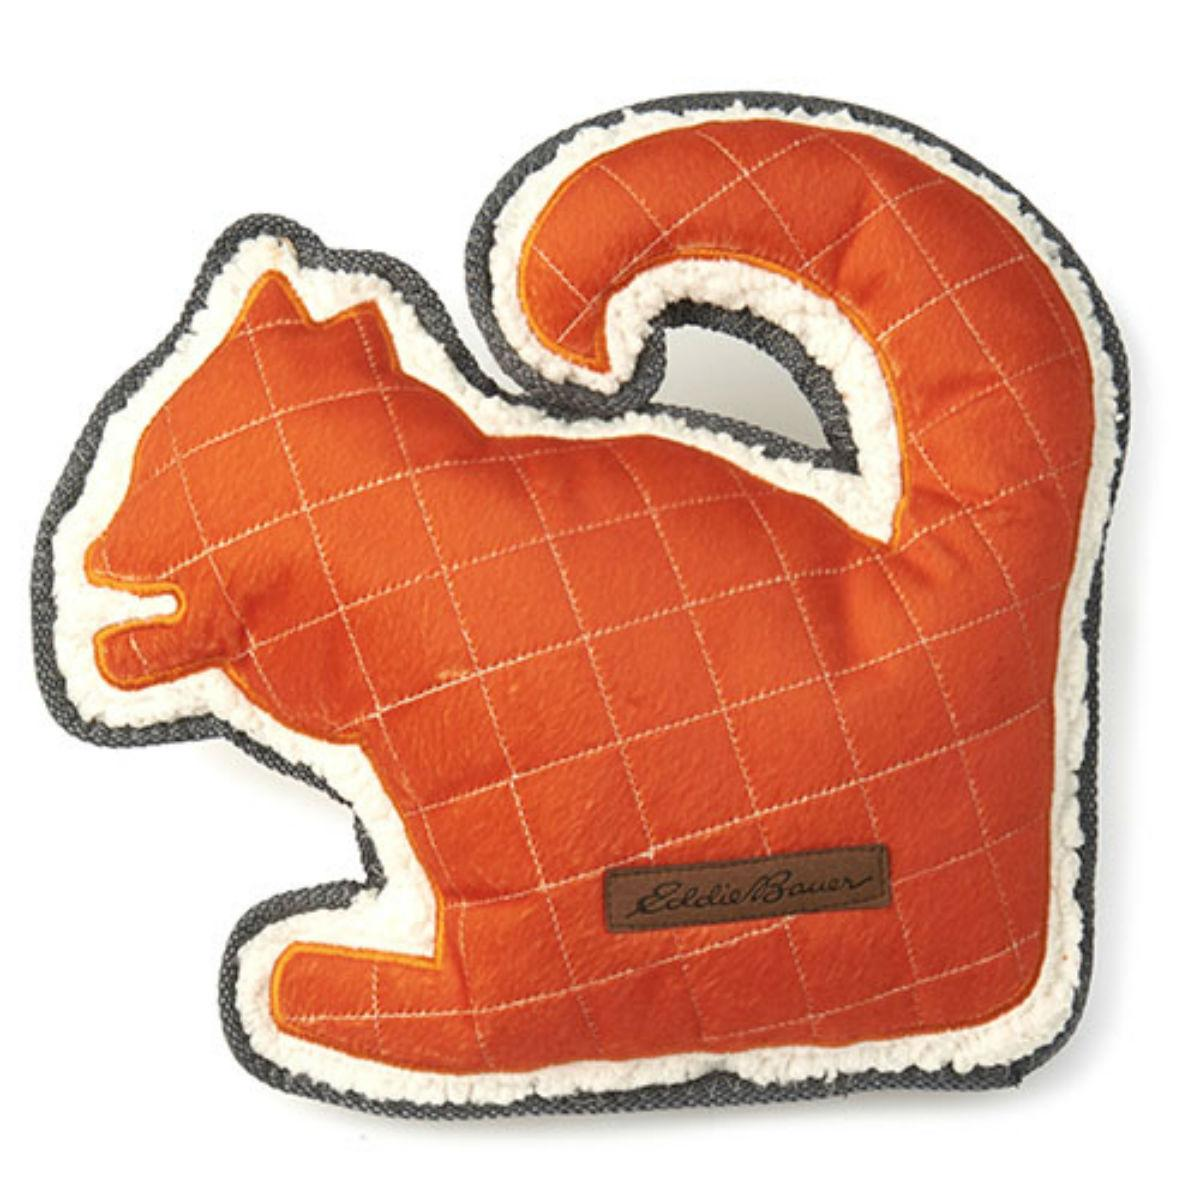 Eddie Bauer Squirrel Dog Toy - Orange